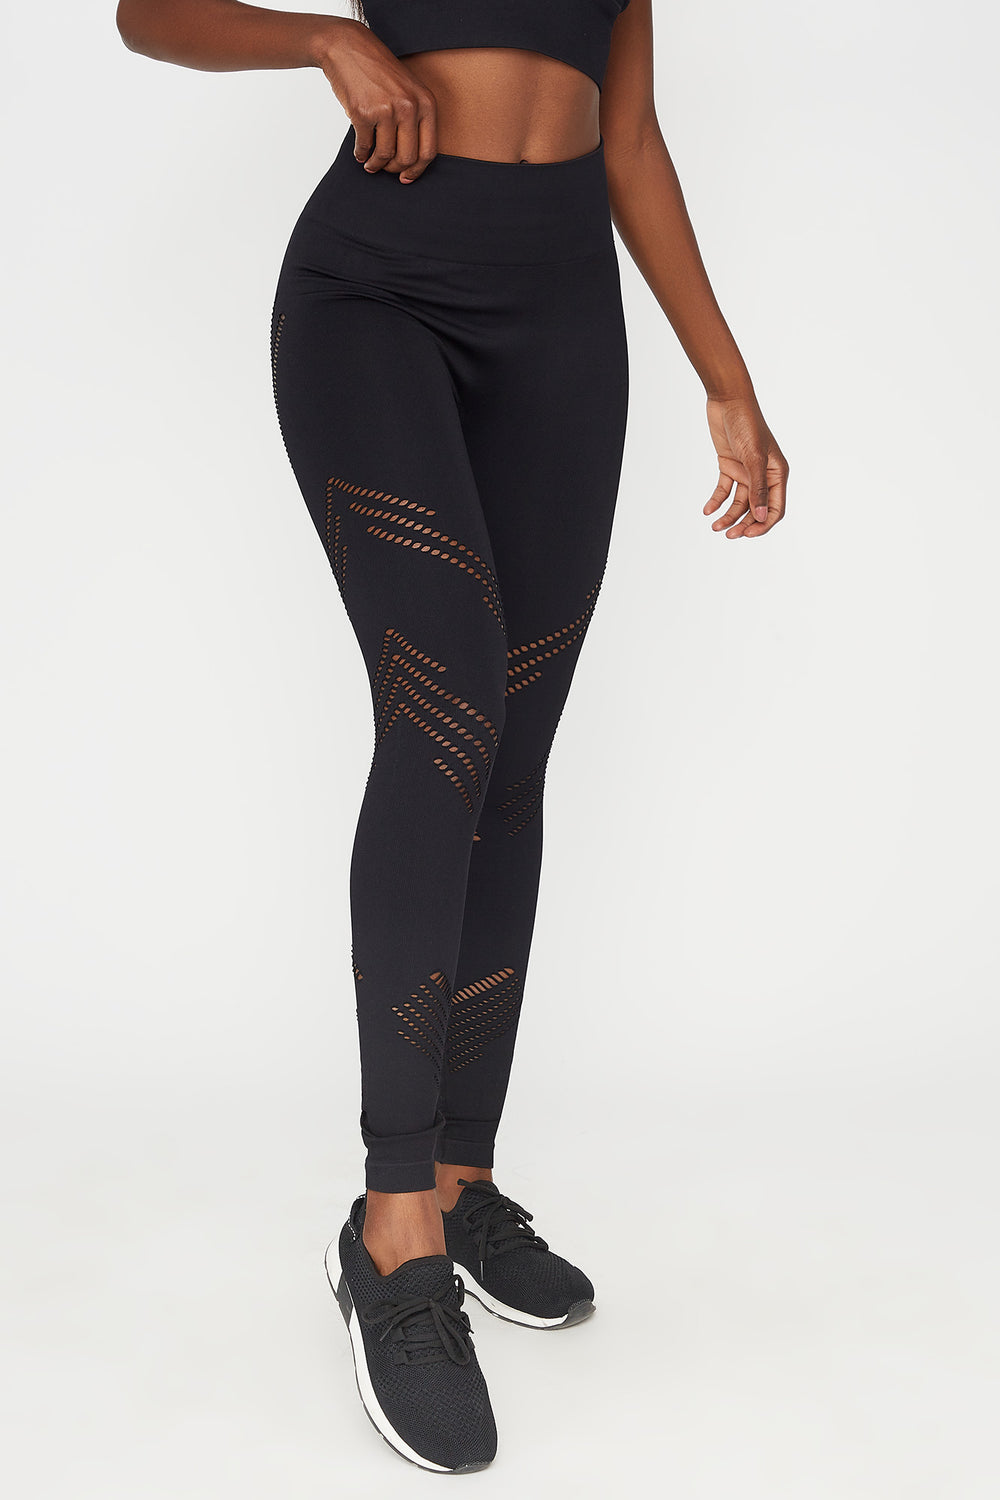 High-Rise Mesh Cut Out Seamless Active Legging Black